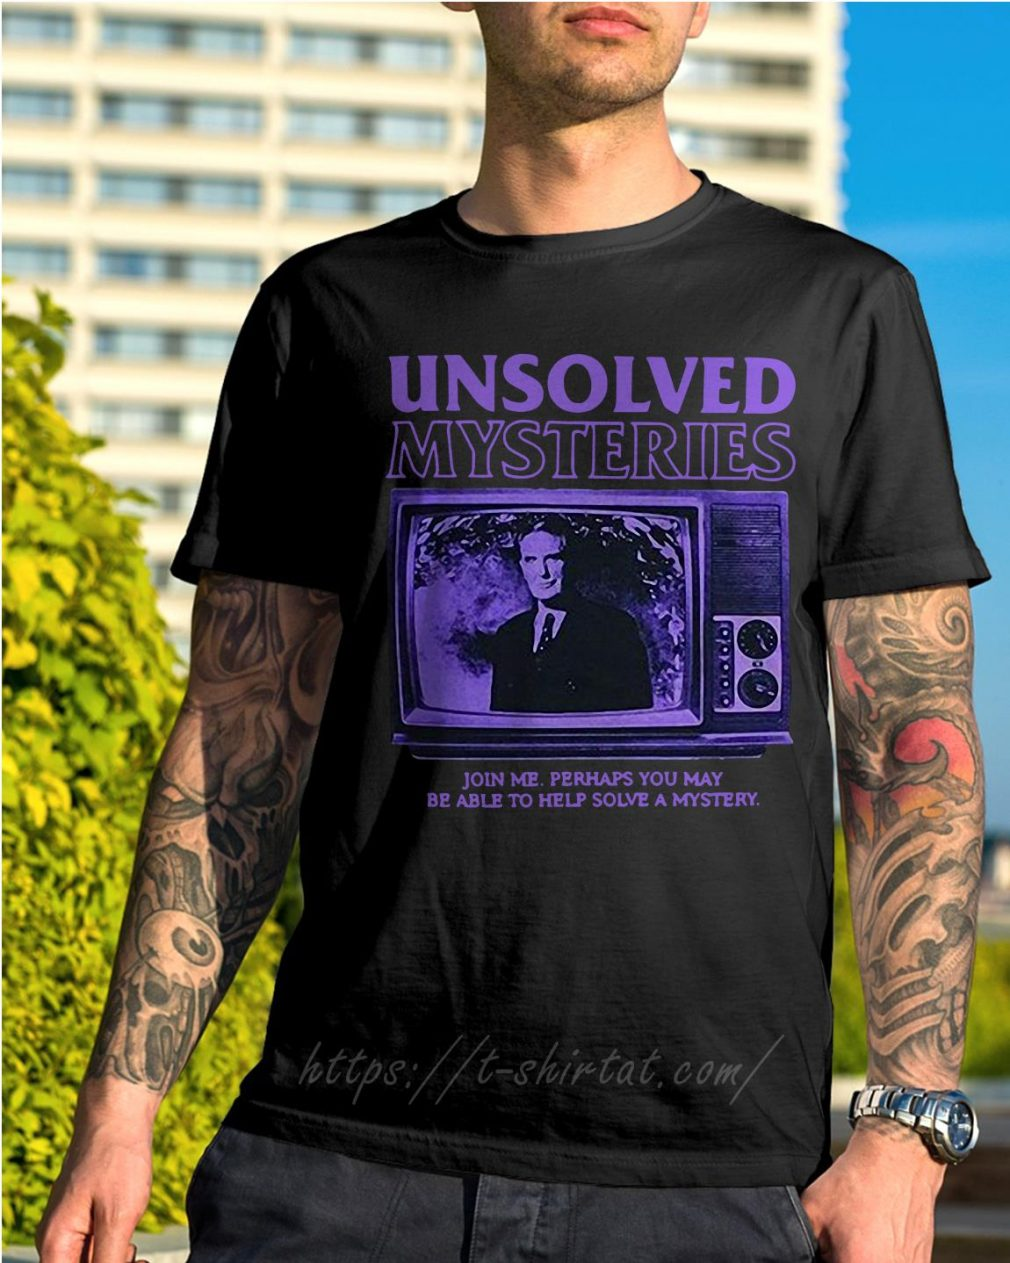 Unsolved Mysteries join me perhaps you may be able to help solve a mystery shirt